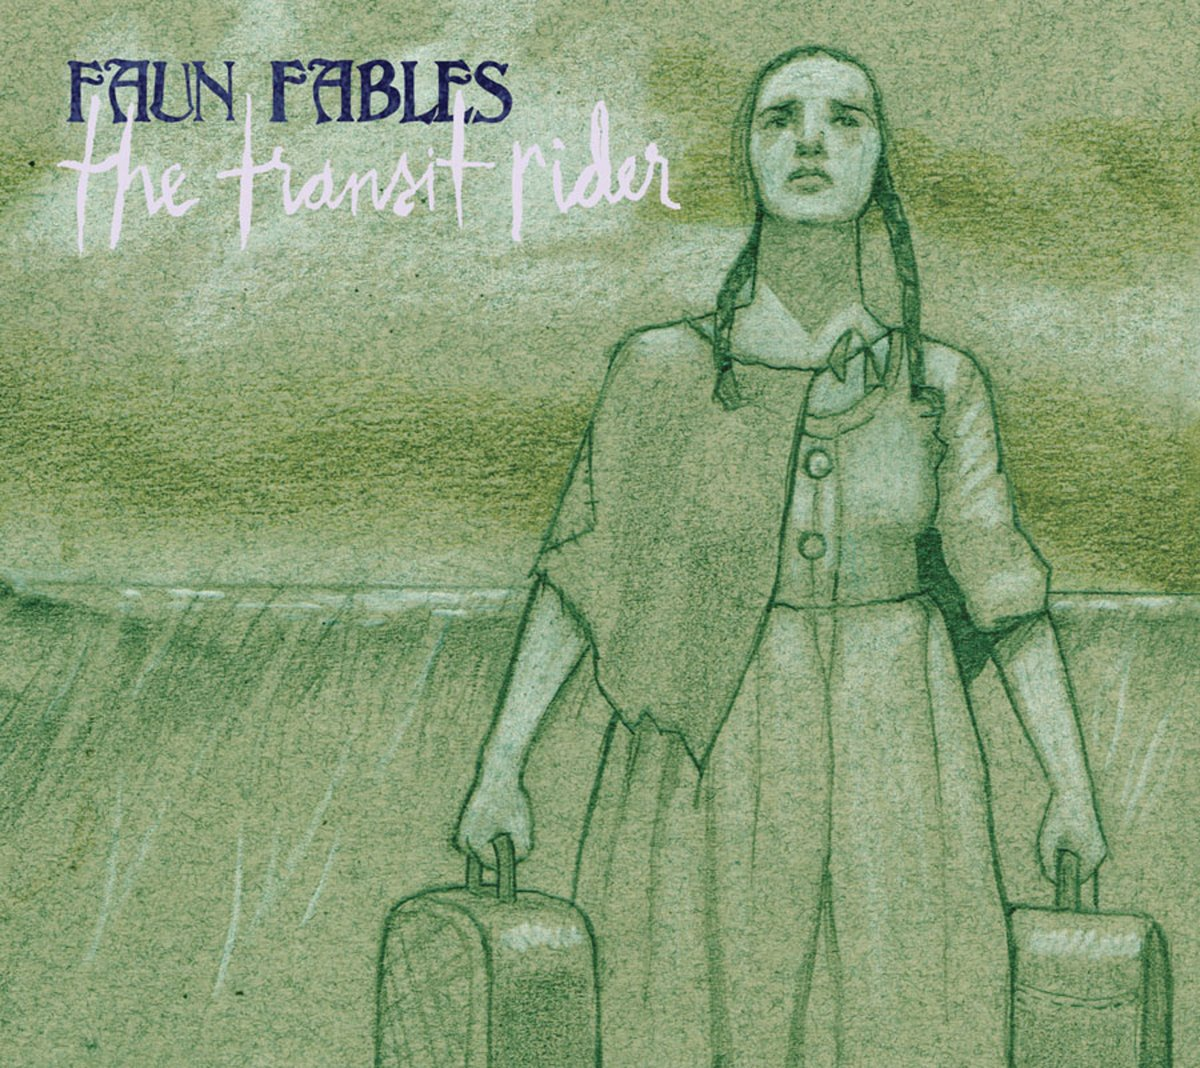 Faun Fables, The Transit Rider